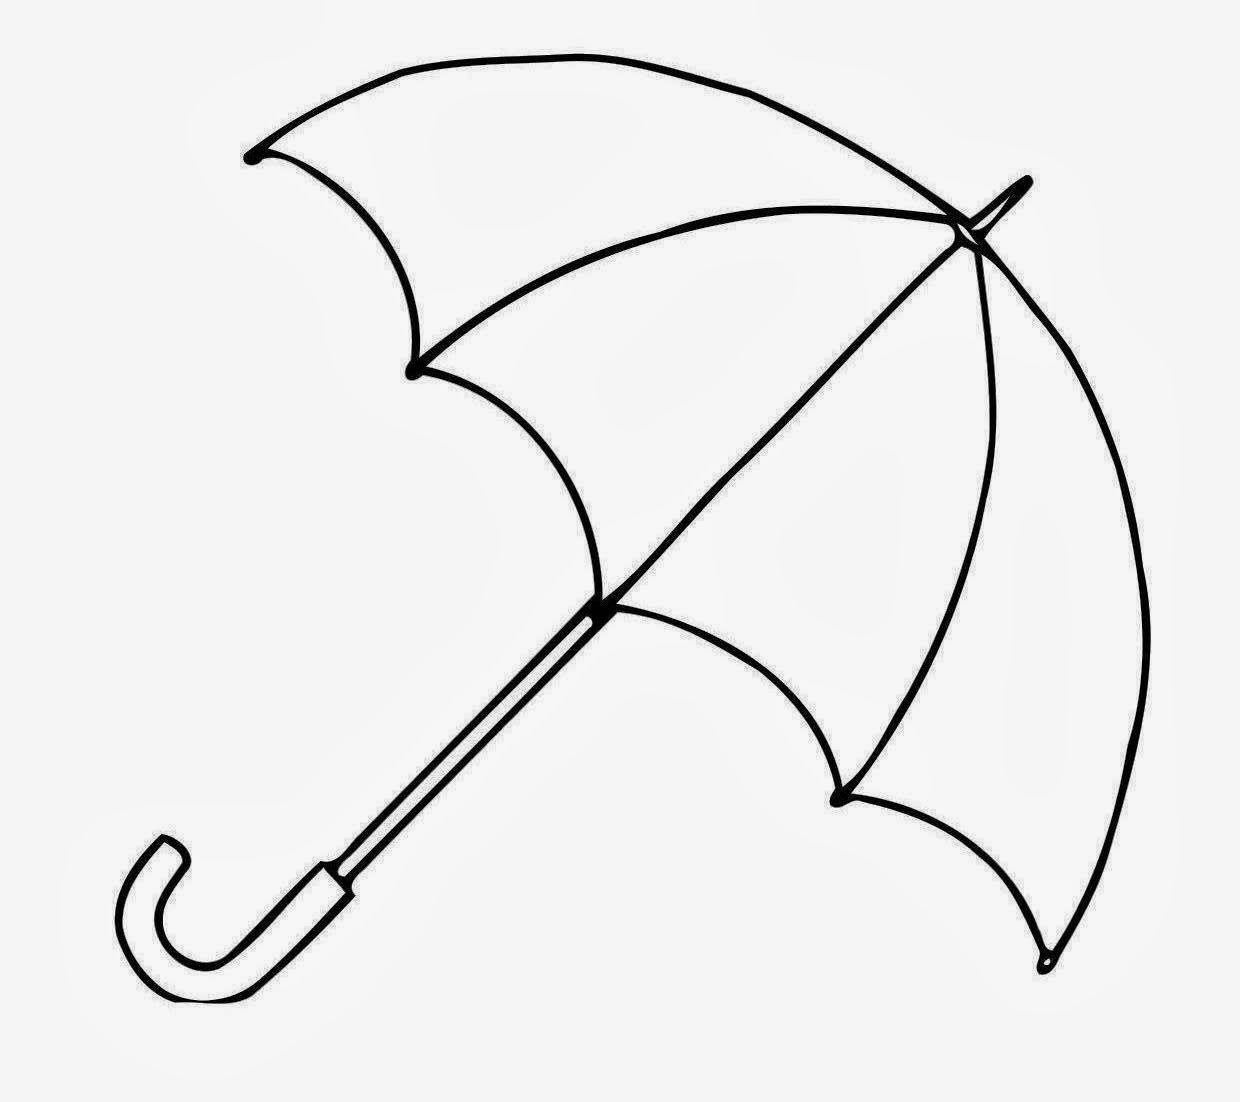 Free Umbrella Outline, Download Free Clip Art, Free Clip Art.